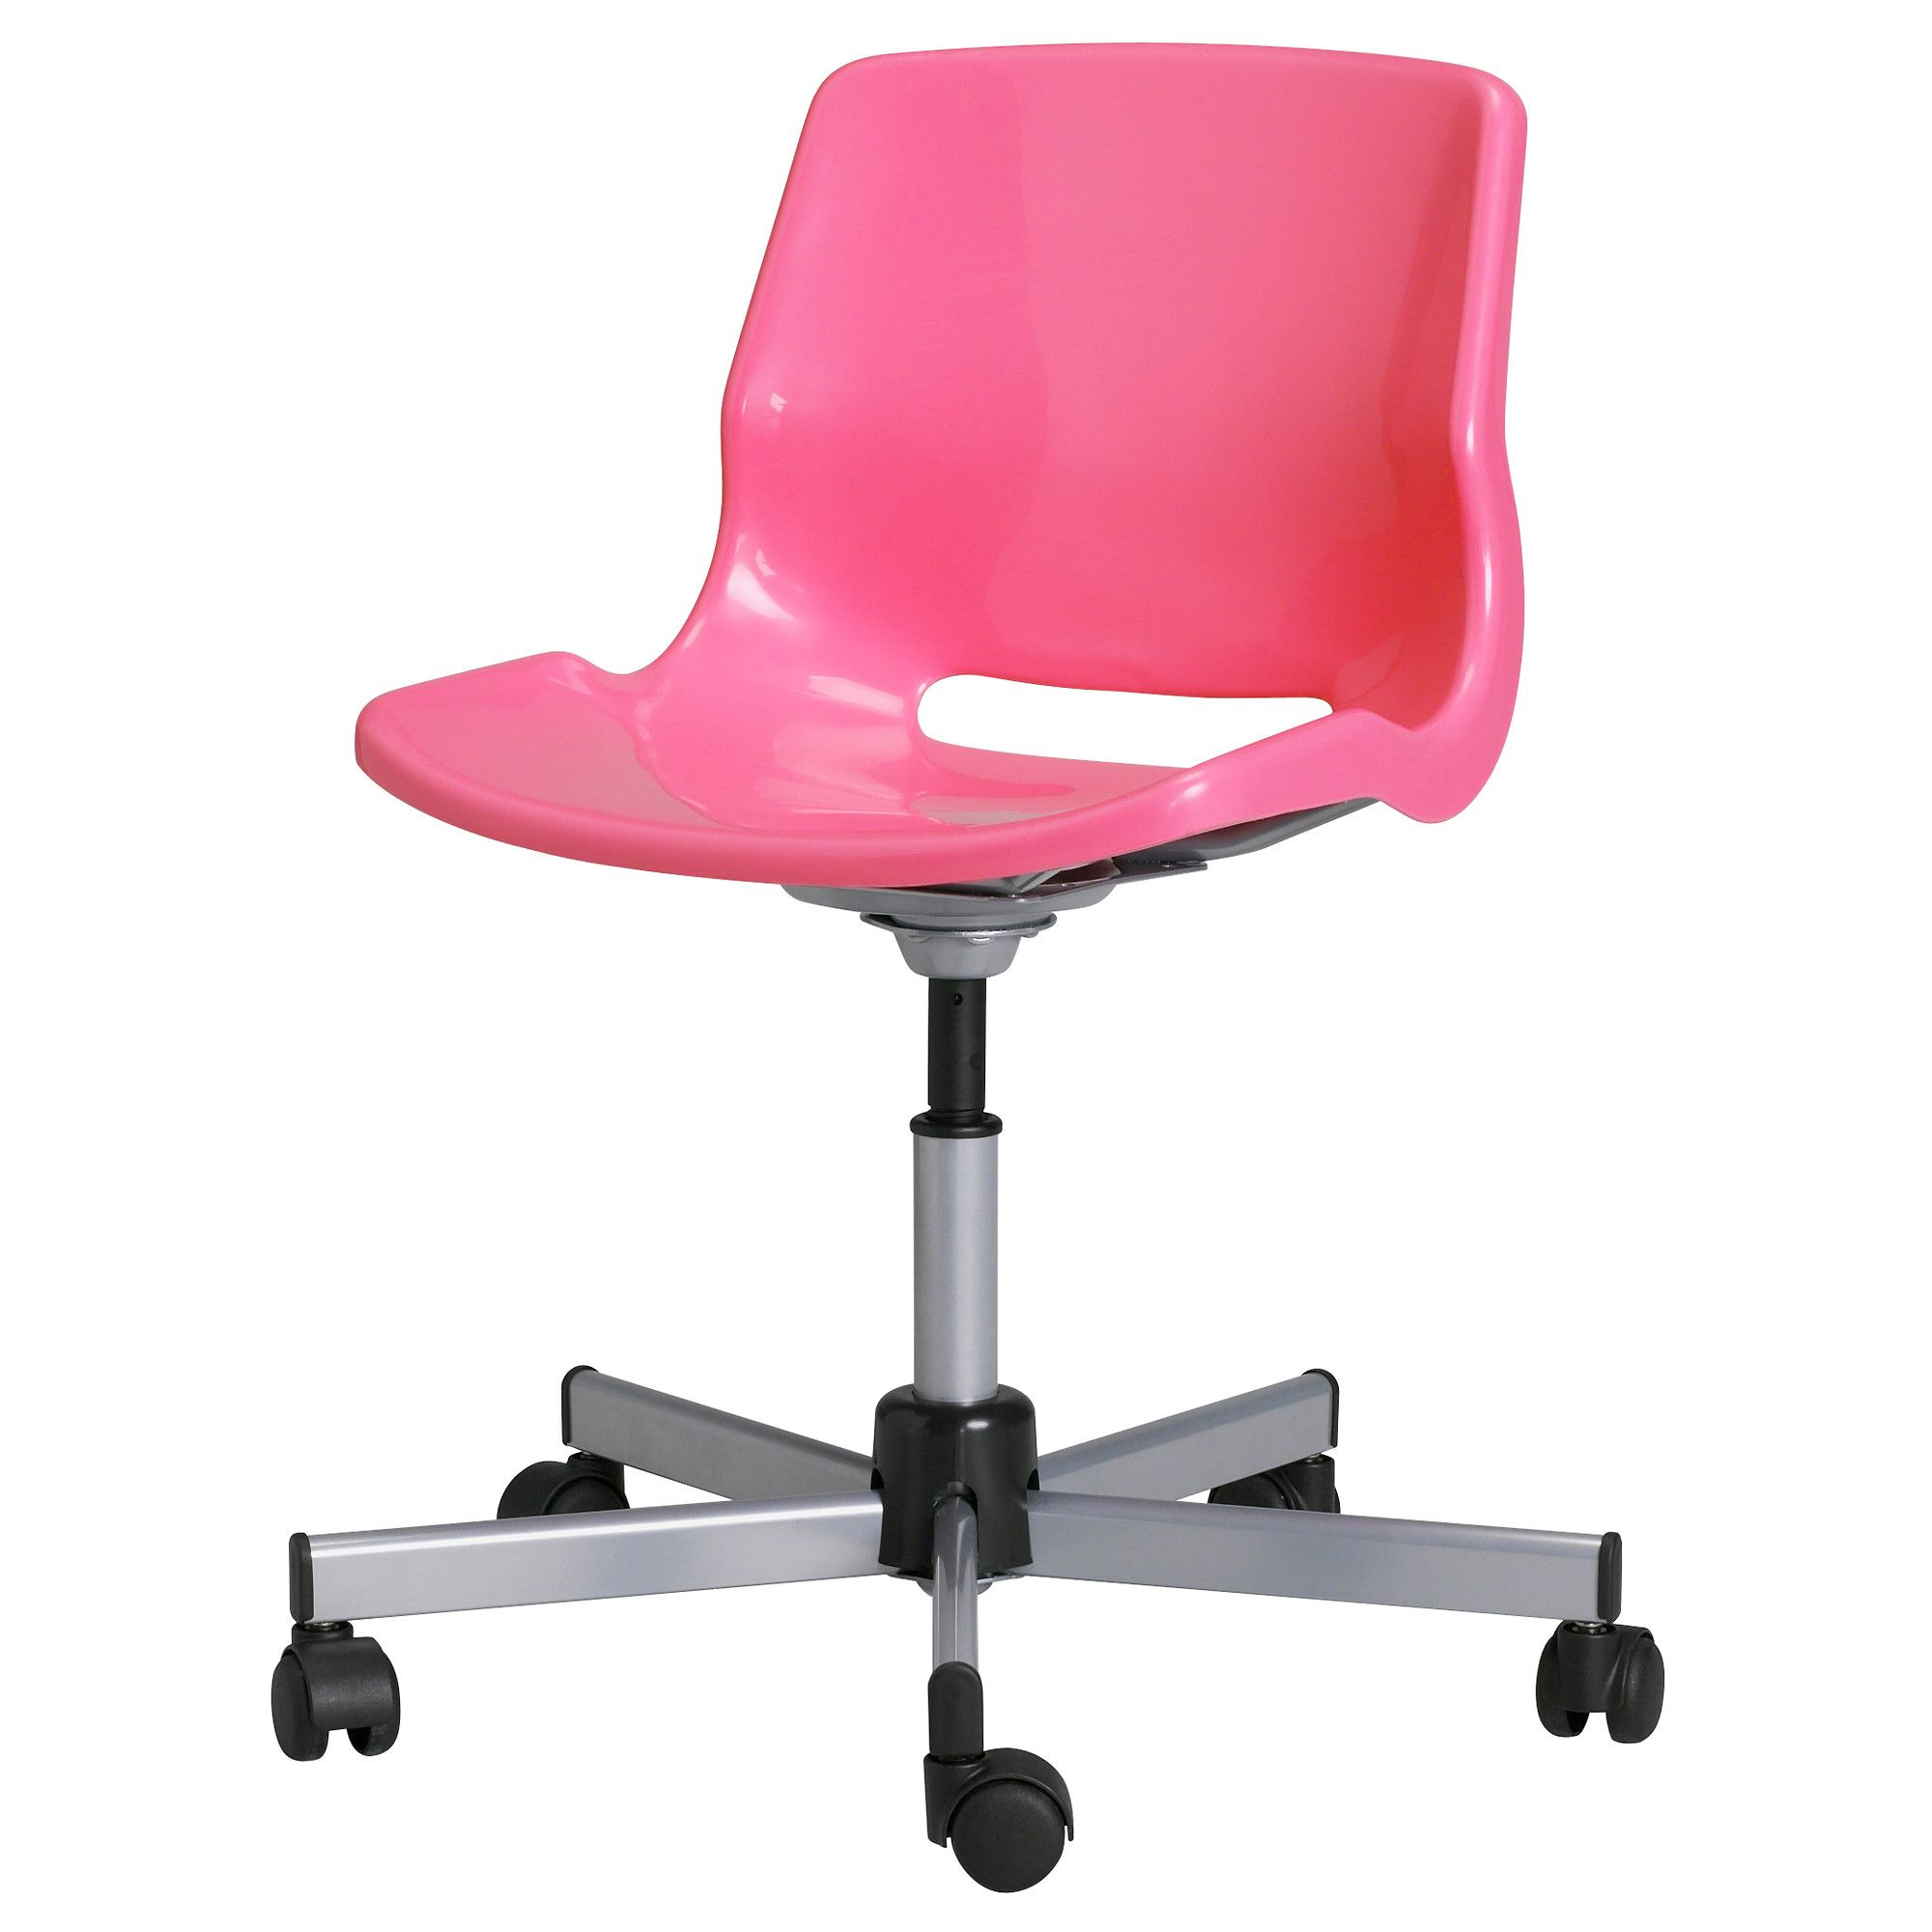 Ikea Pink Desk Chair Kodex Accessories Snille Swivel For My Office Home